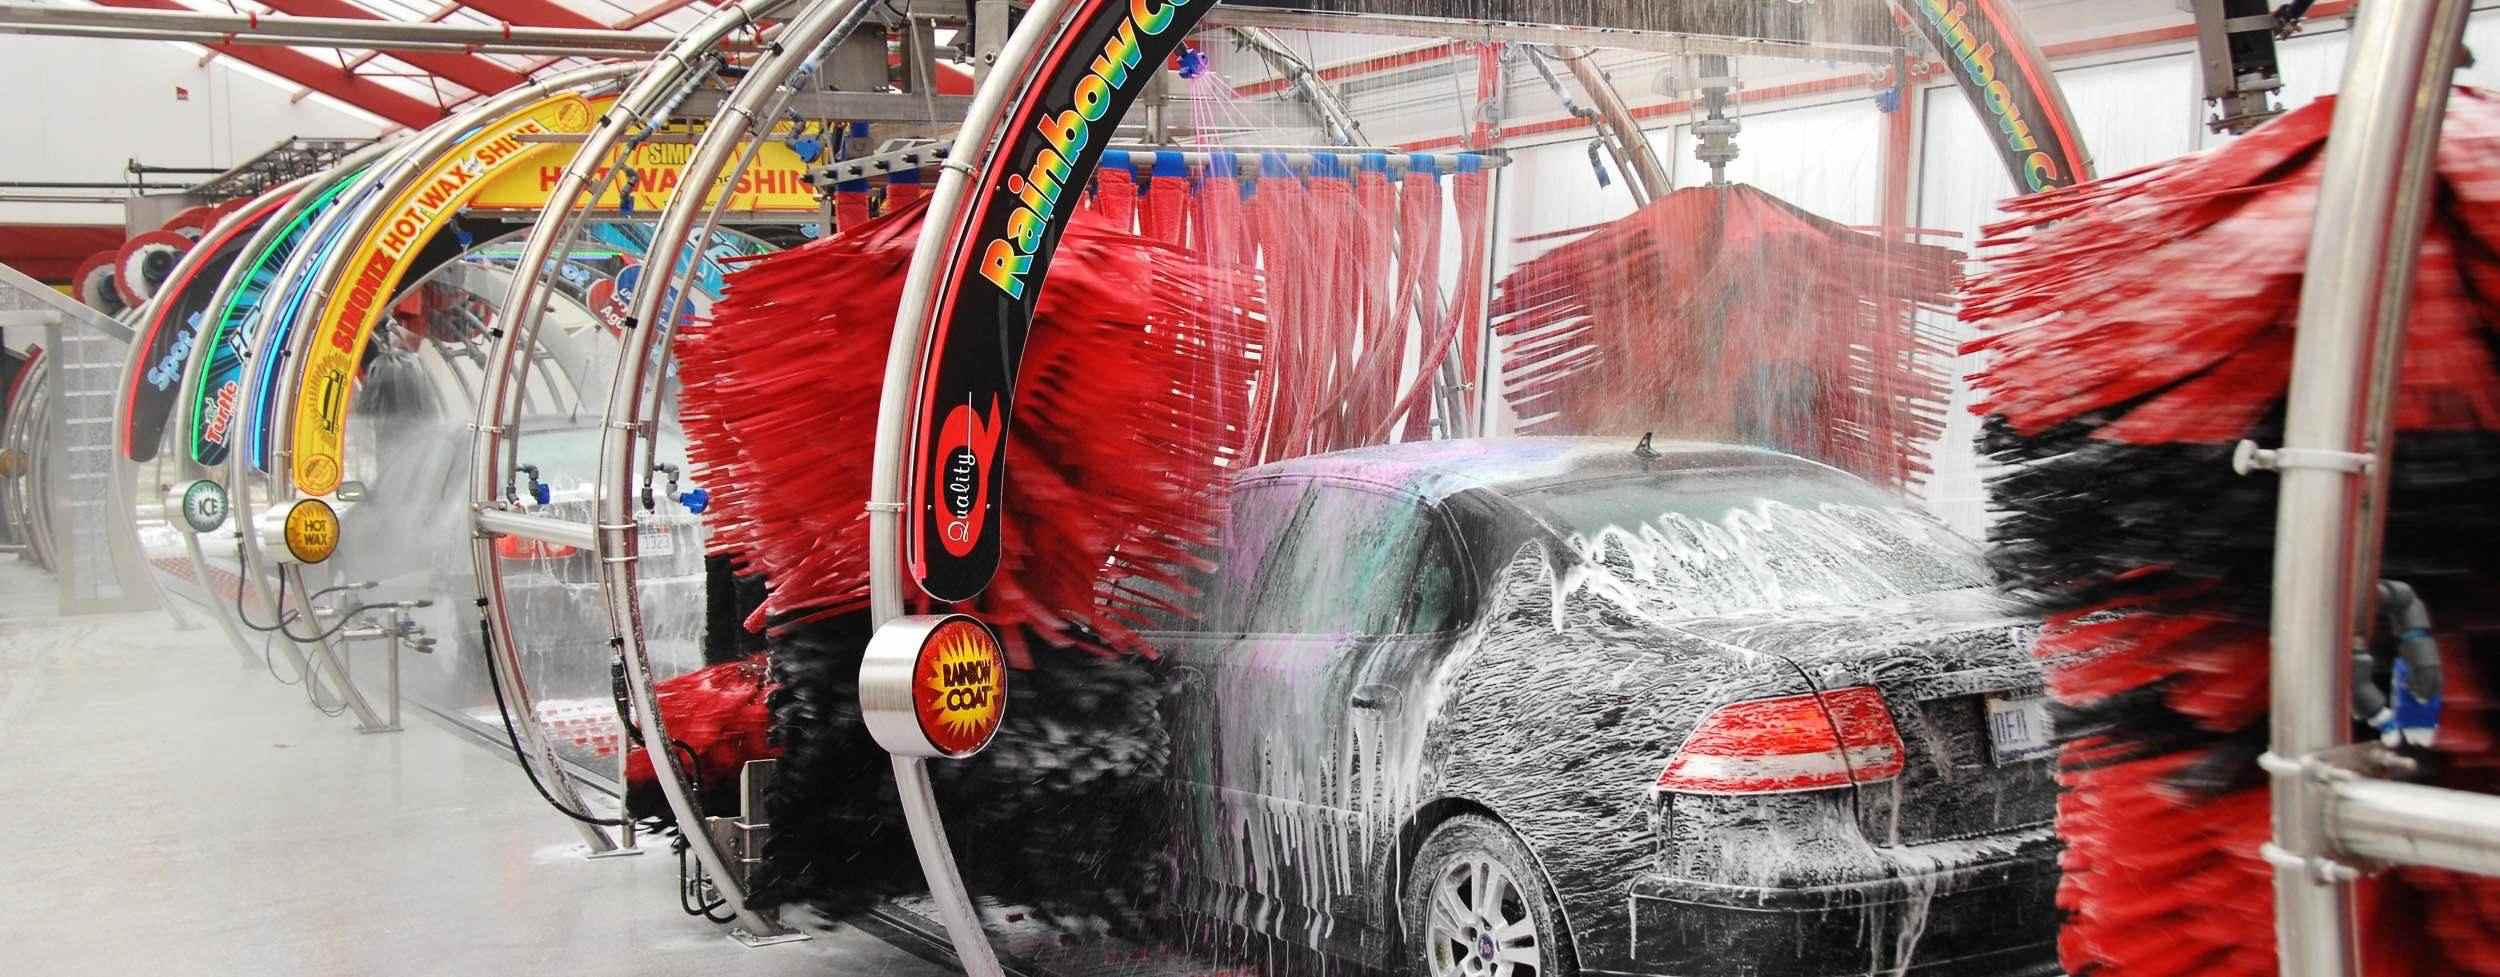 Tommy Car Wash Systems